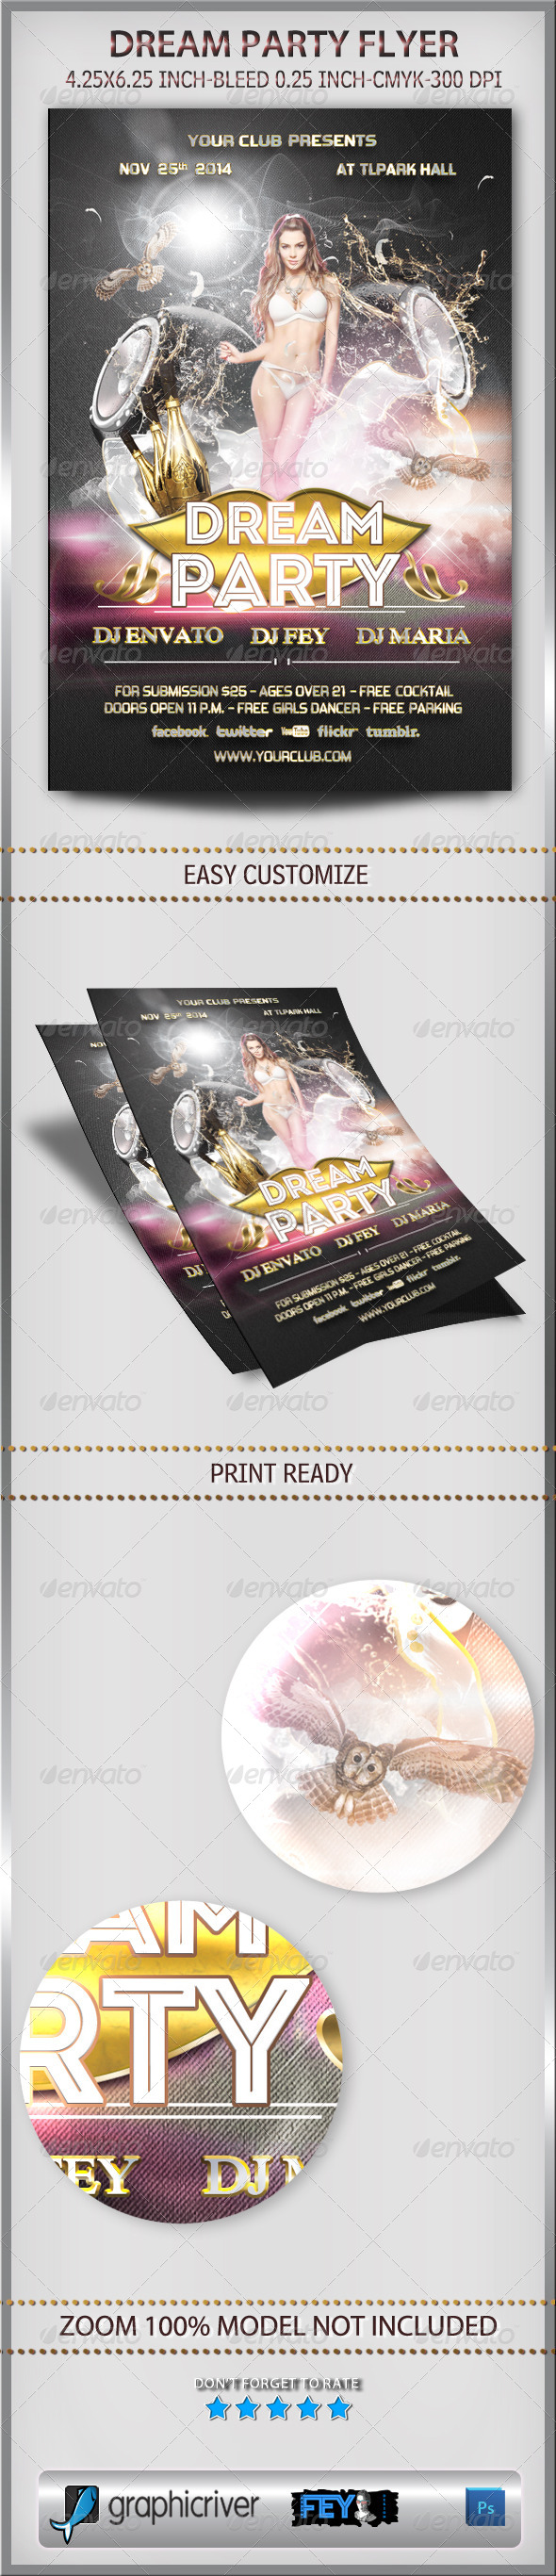 Dream Party Flyer - Flyers Print Templates